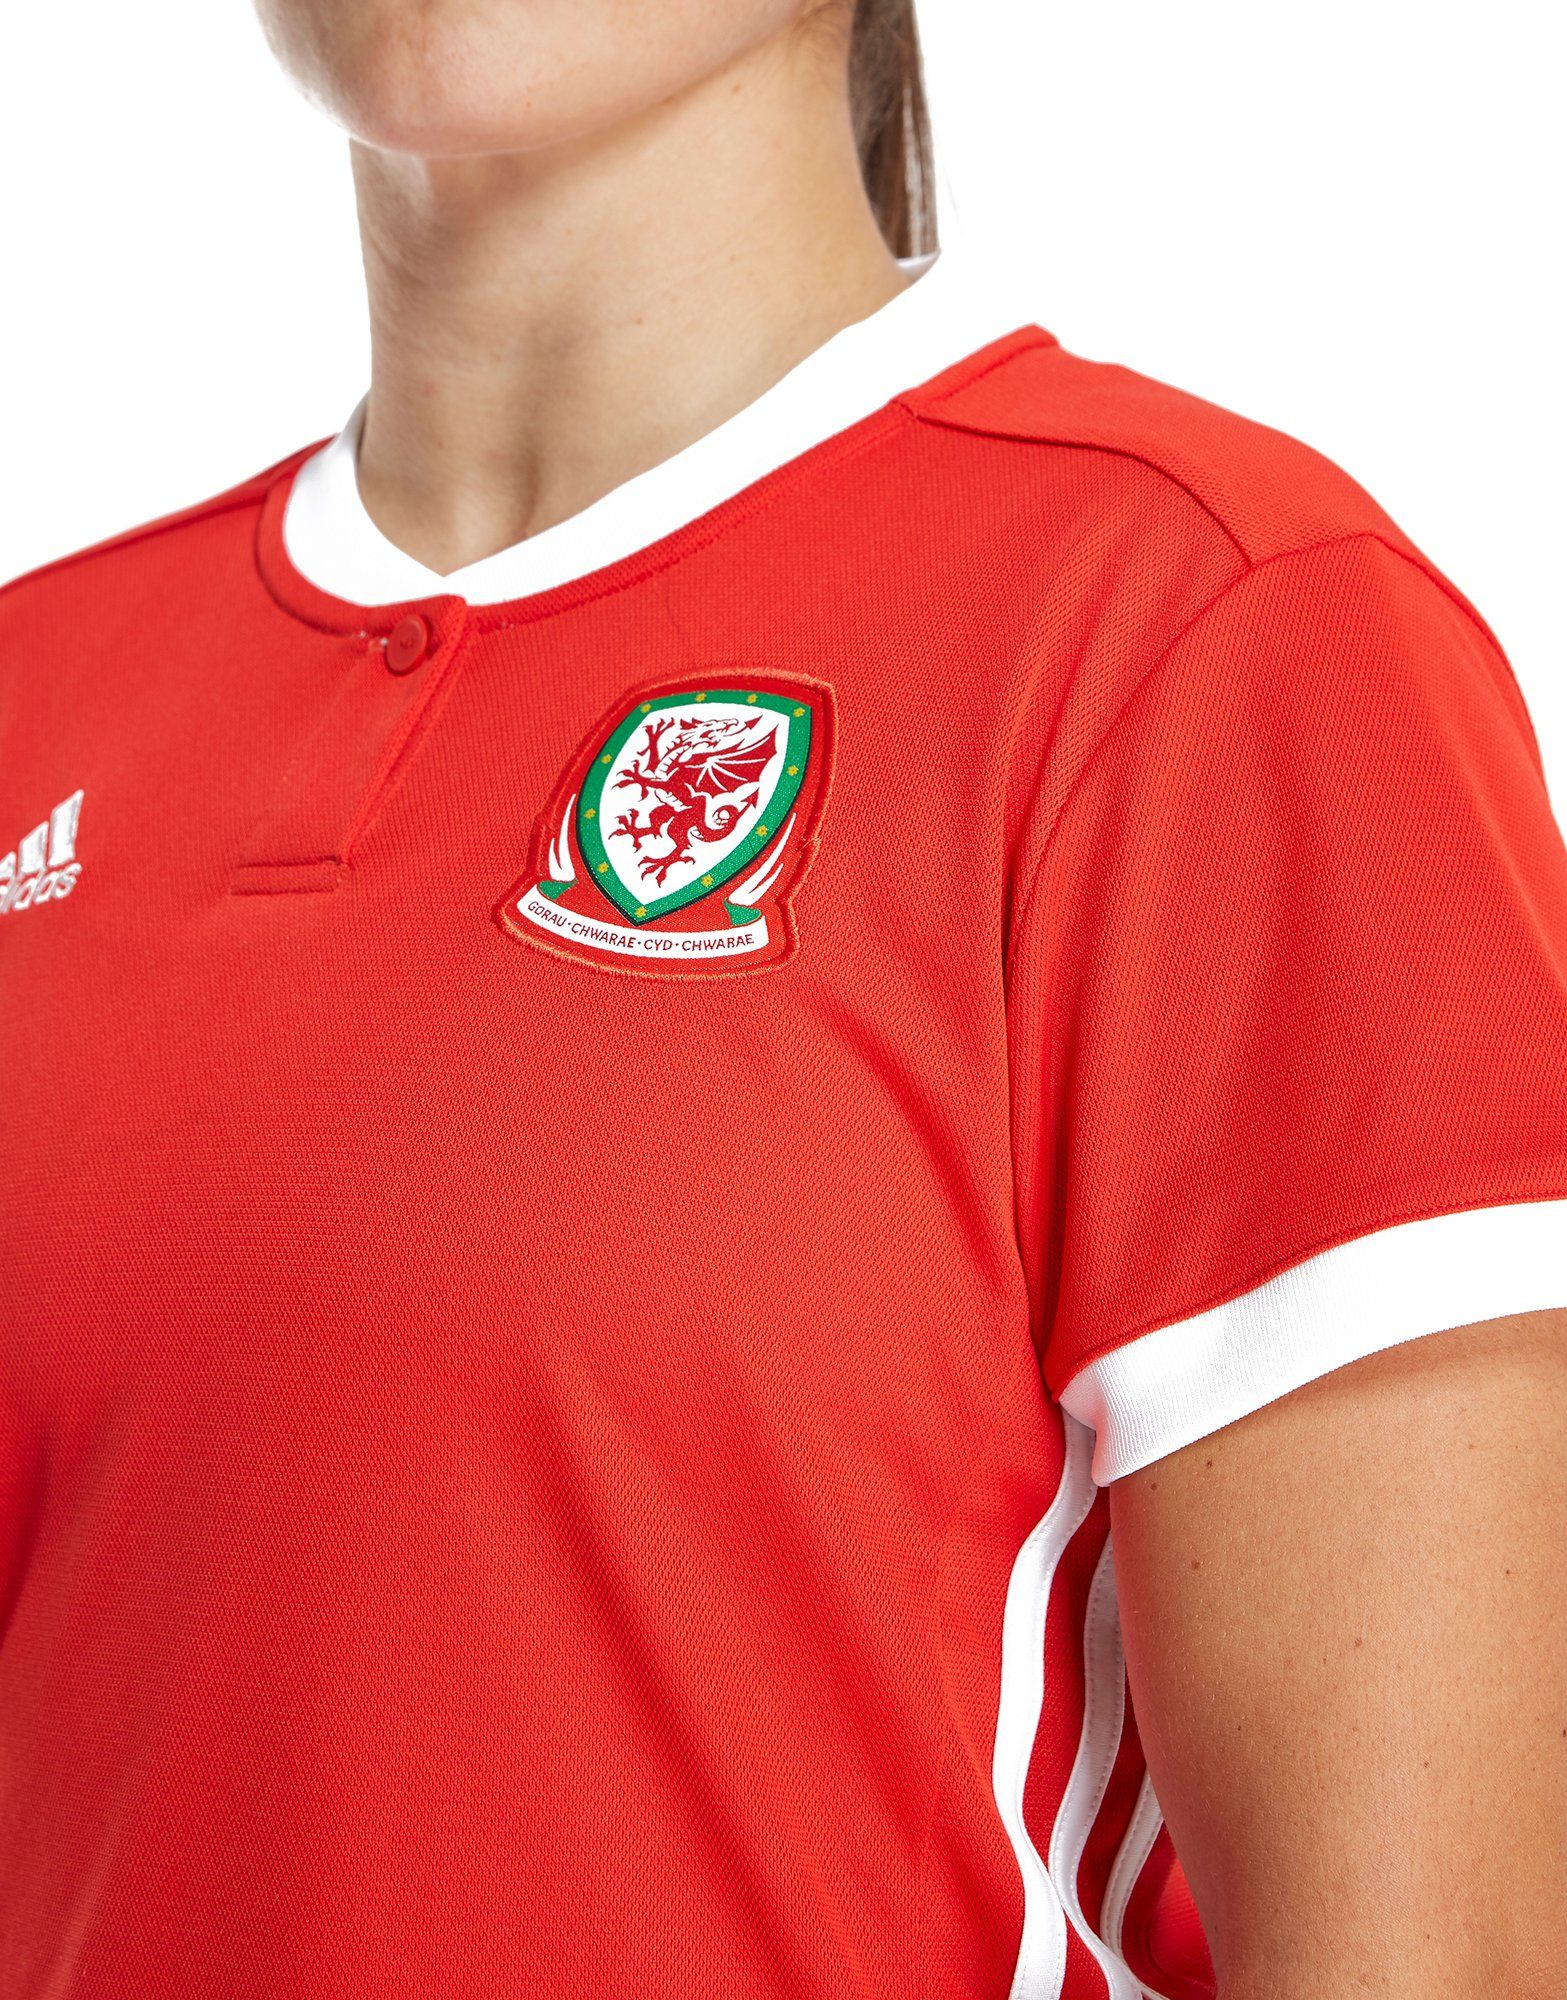 adidas Wales 2018/19 Home Shirt Women's Rot